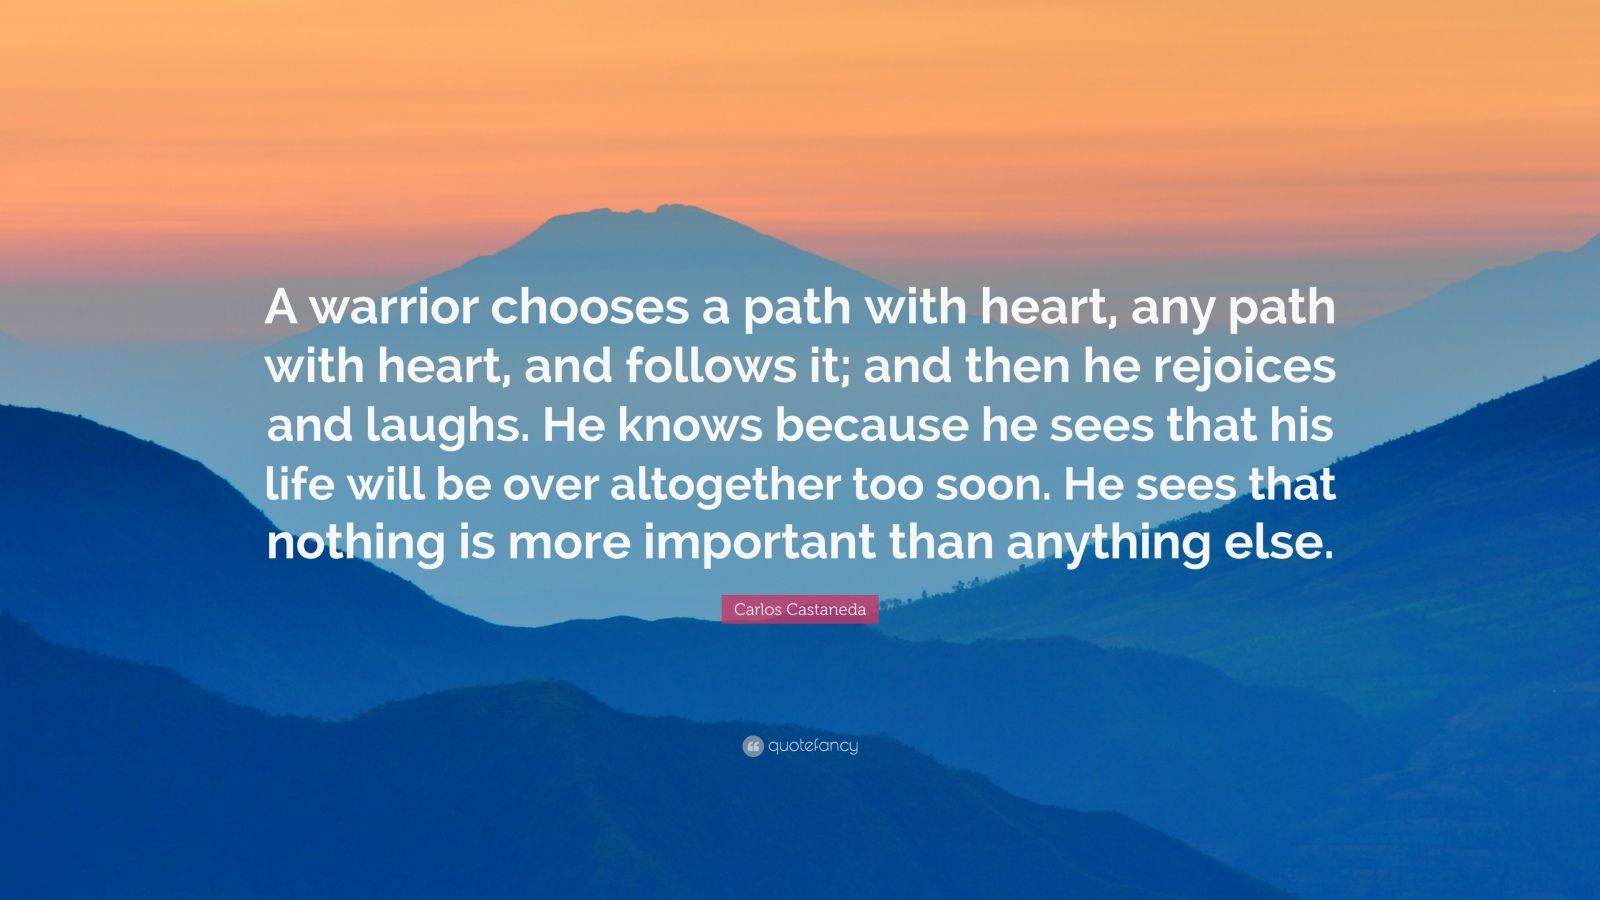 "Carlos Castaneda Quote: ""A warrior chooses a path with heart, any path with heart, and follows it; and then he rejoices and laughs. He knows because he sees that his life will be over altogether too soon. He sees that nothing is more important than anything else."""